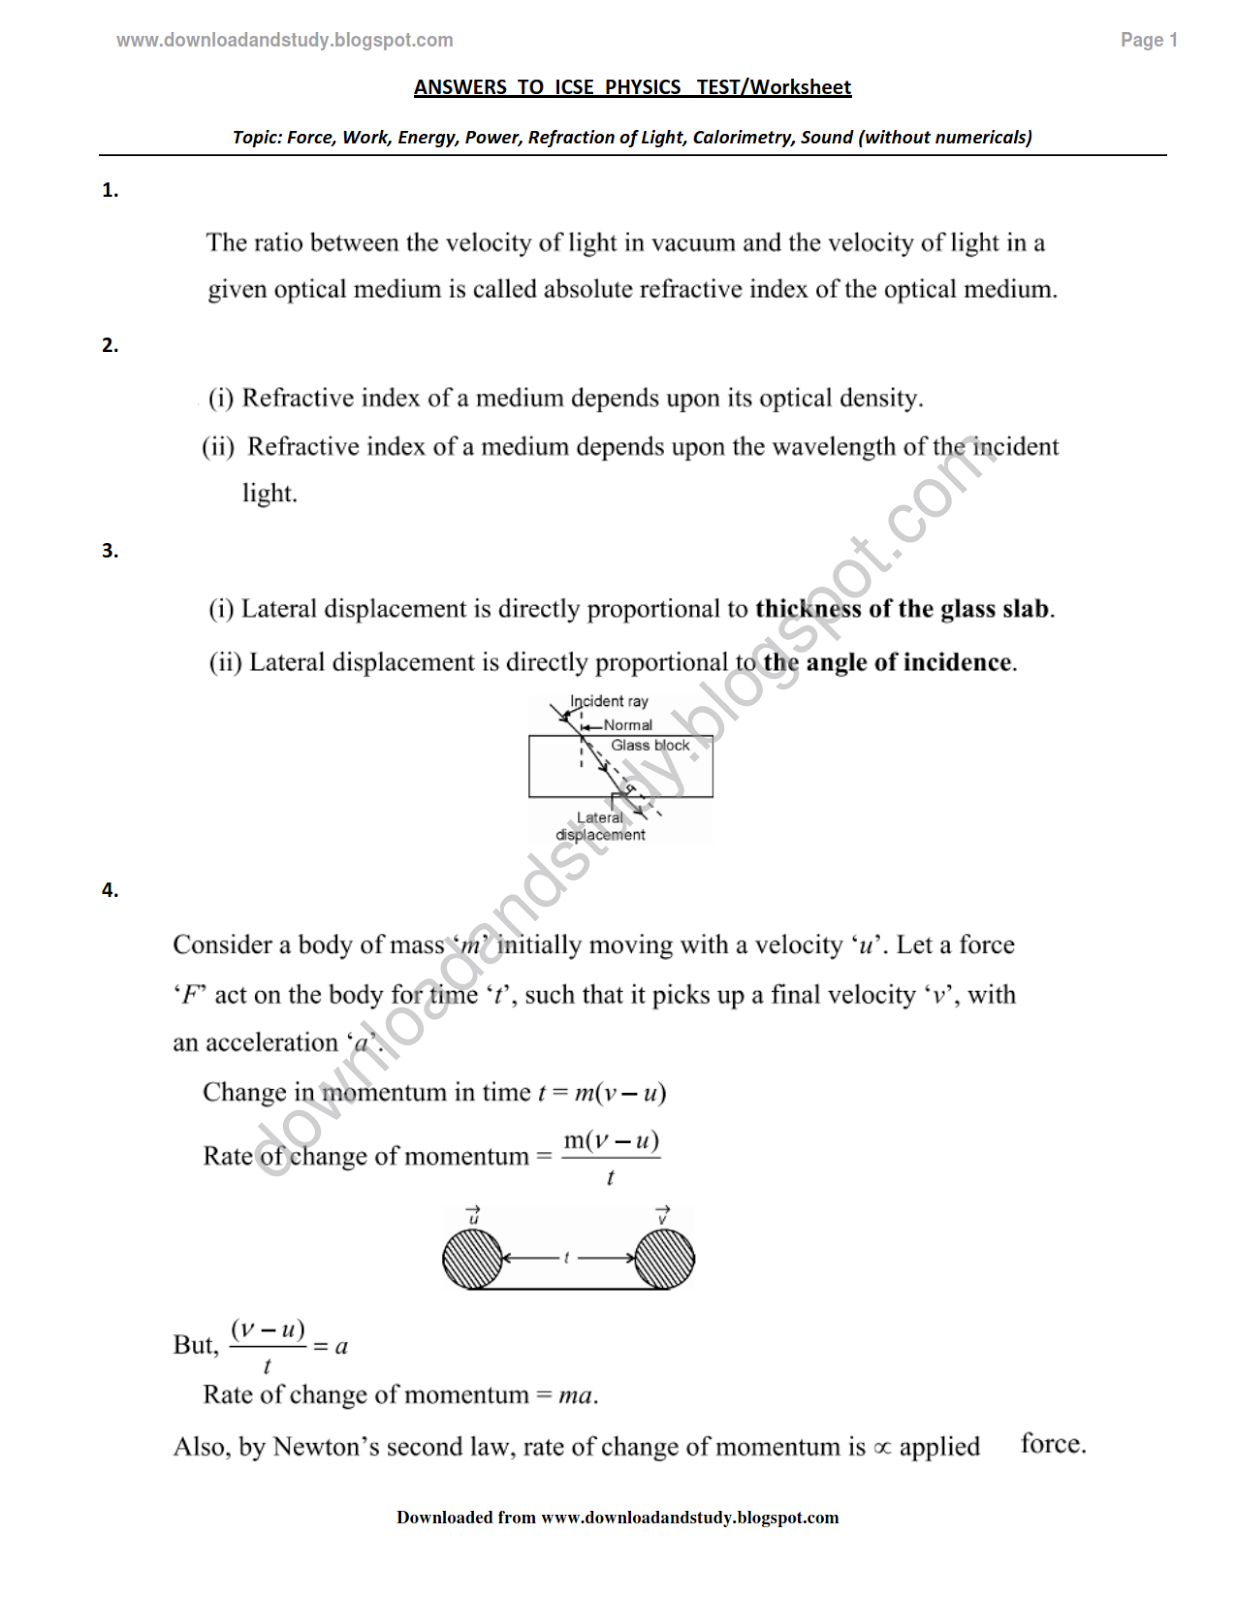 Download Study Solution To Icse Physics Test Worksheet